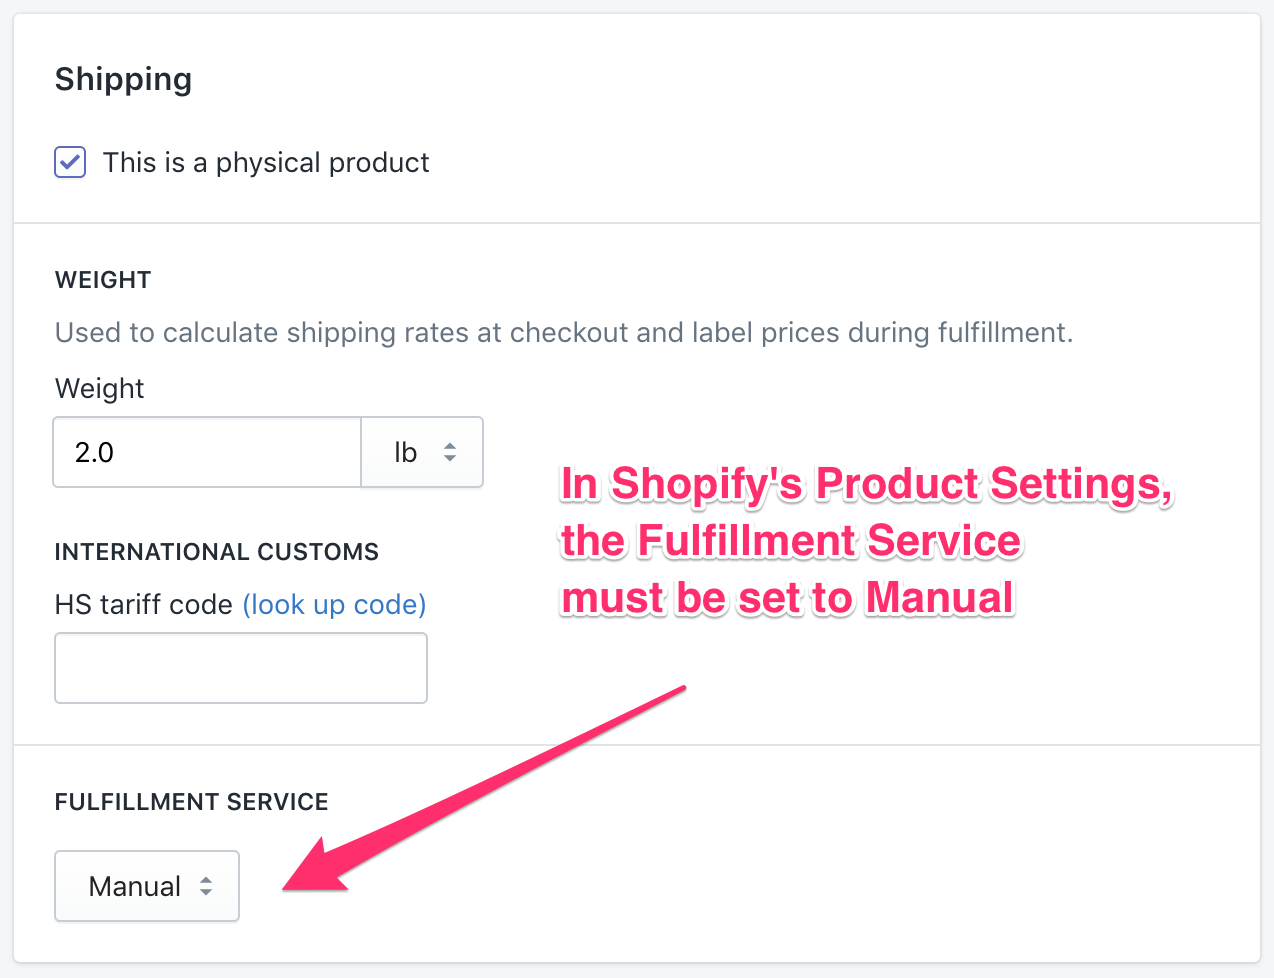 A screenshot showing the product settings in Shopify. Towards the bottom there is a section titled 'Fulfillment Service,' and in the drop down menu below, the option for 'Manual' is selected. There is an arrow pointing at this with a notation that reads, 'In Shopify's Product Settings, the Fulfillment Service must be set to Manual.'